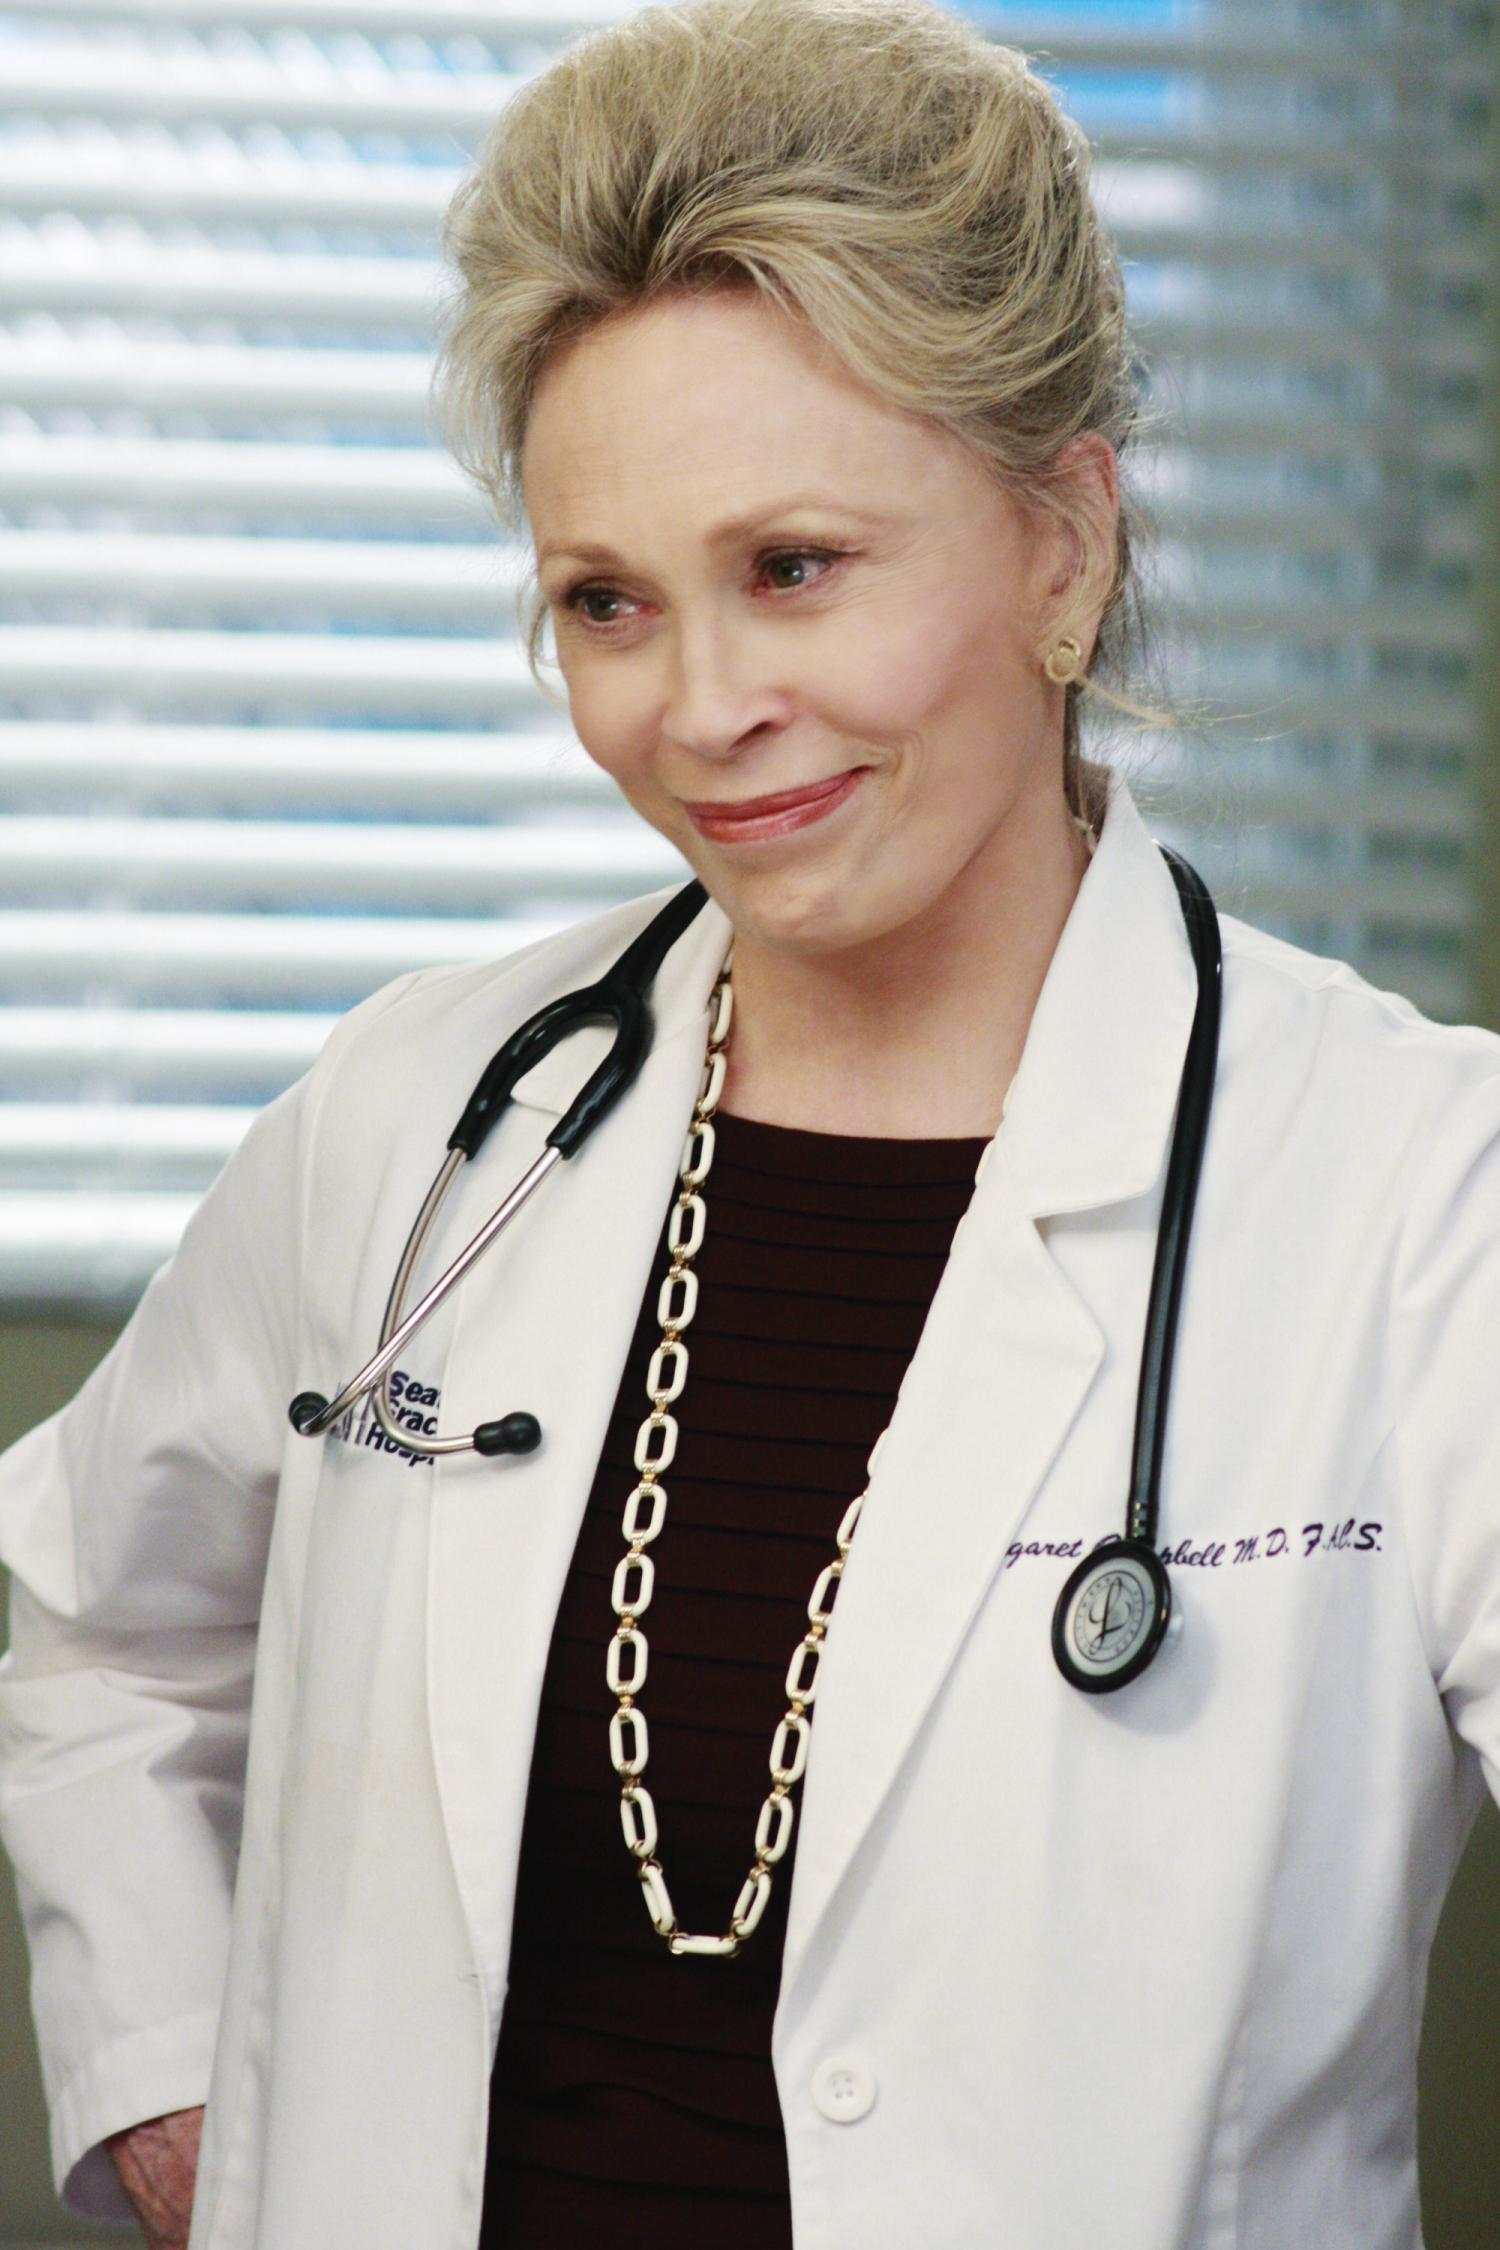 Margaret Campbell Greys Anatomy Universe Wiki Fandom Powered By